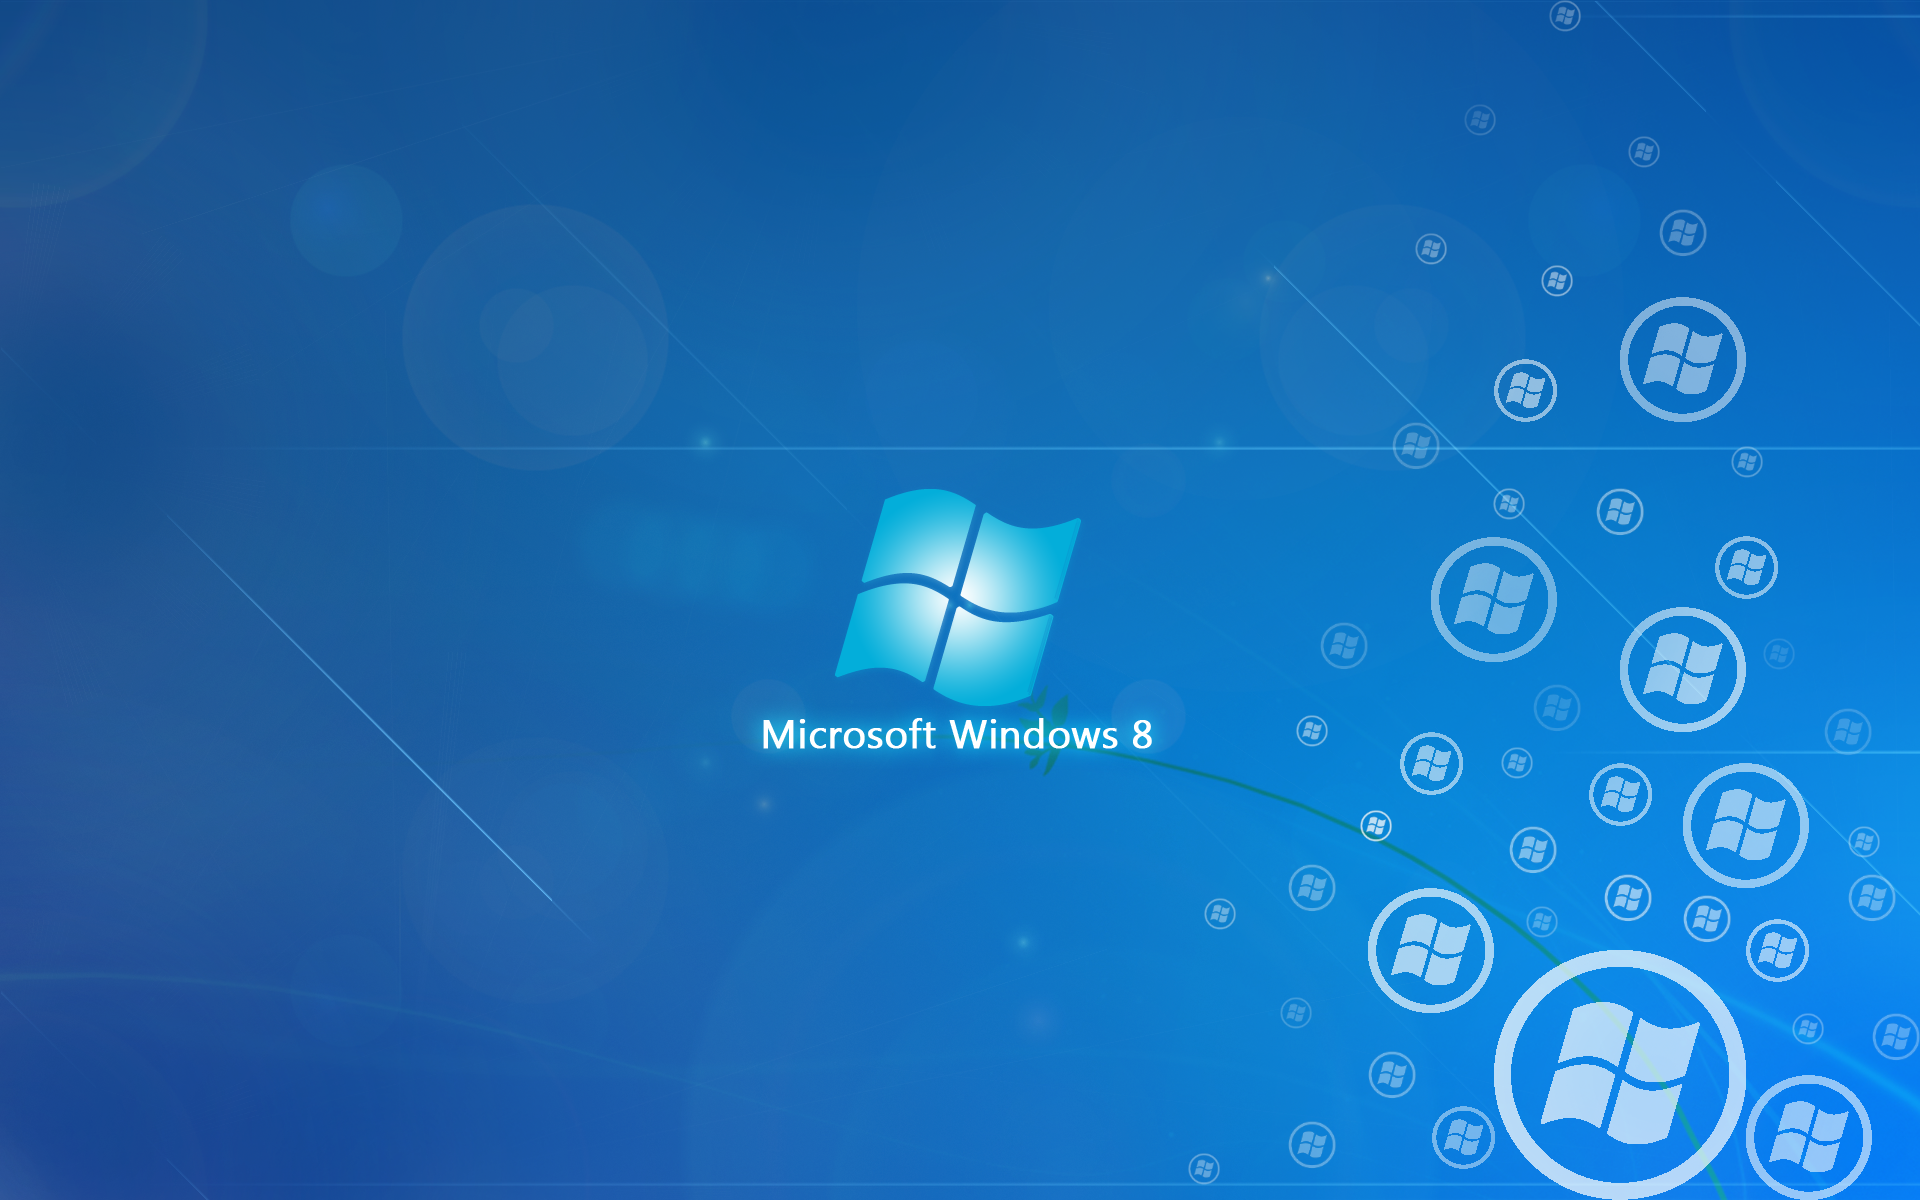 Download Microsoft Windows 8 Wallpapers Pack 1   wallpapers   TechMynd 1920x1200